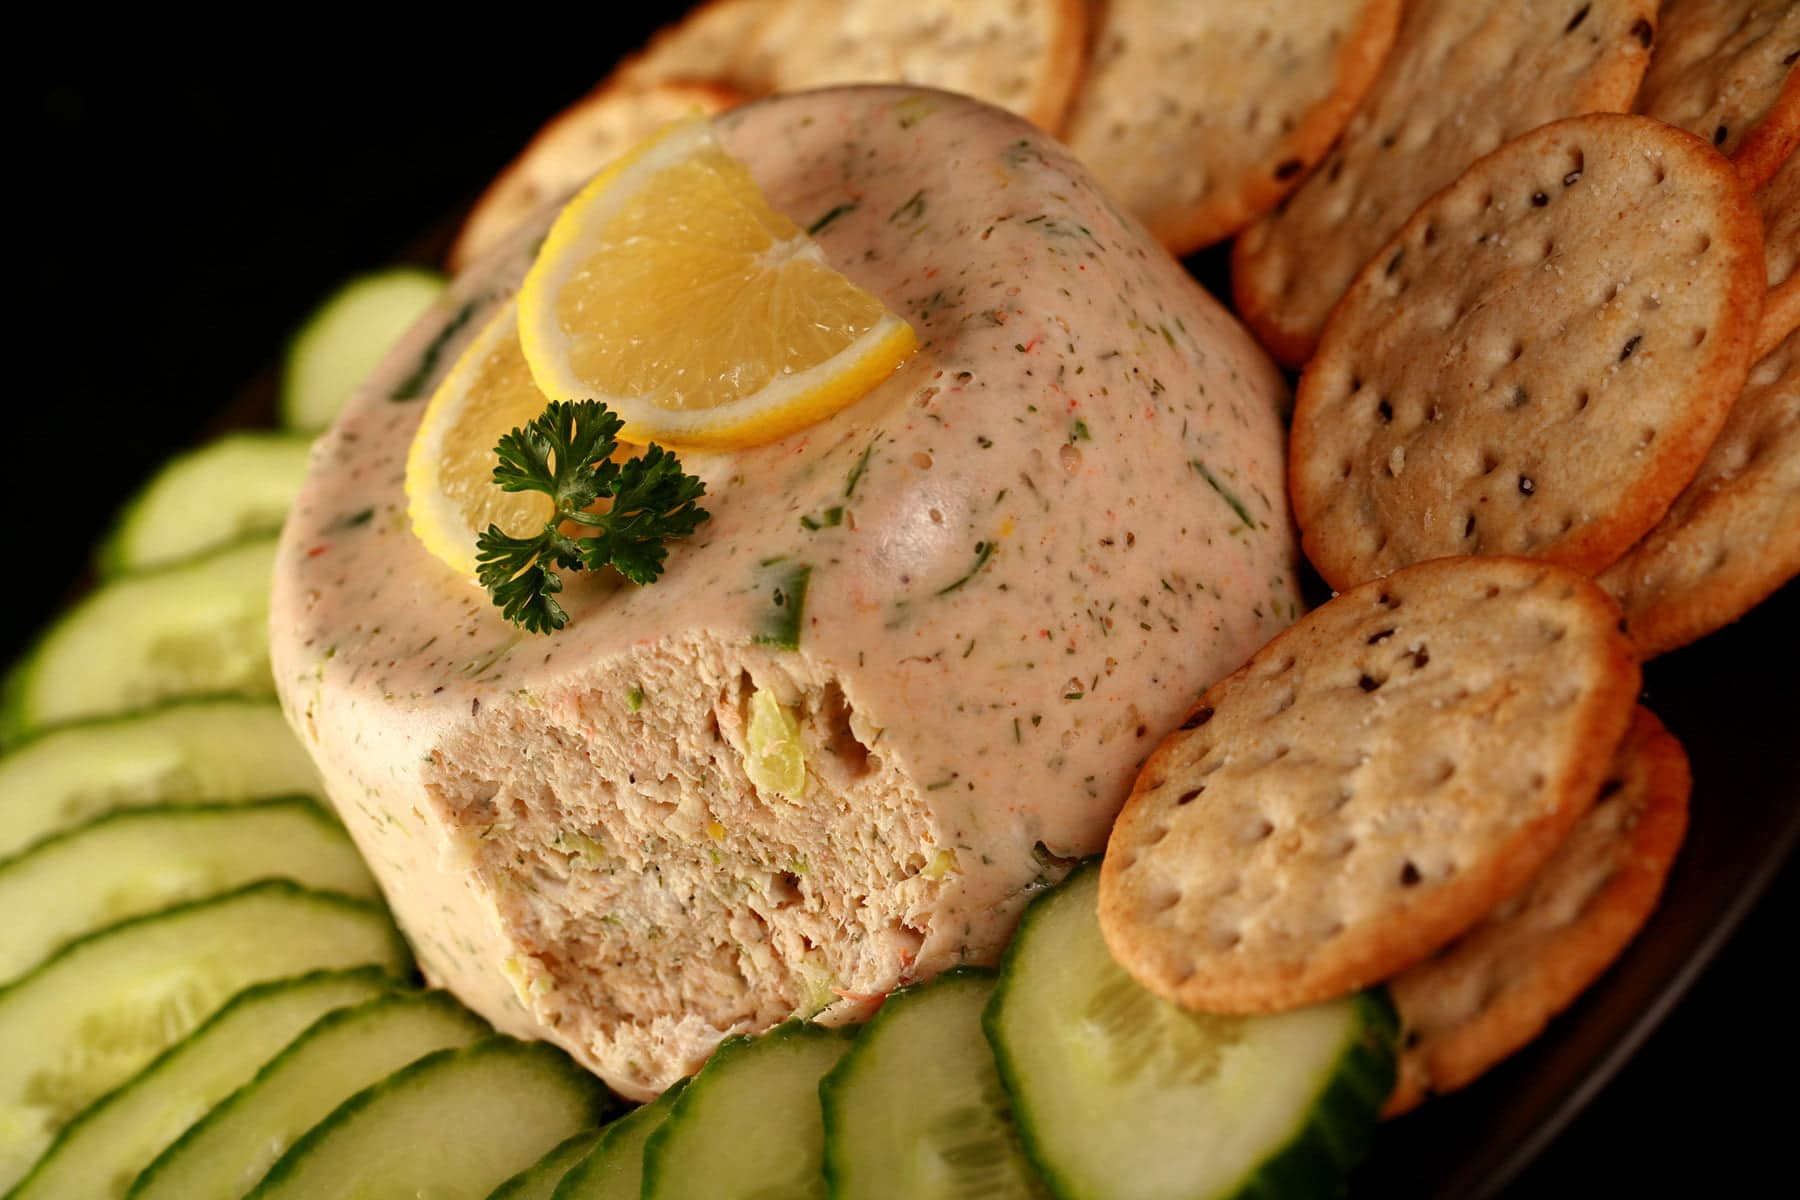 A closeup view of crab mousse. It is topped with slices of lemon and a sprig of parsley, and is surrounded by cucumber slices and crackers.